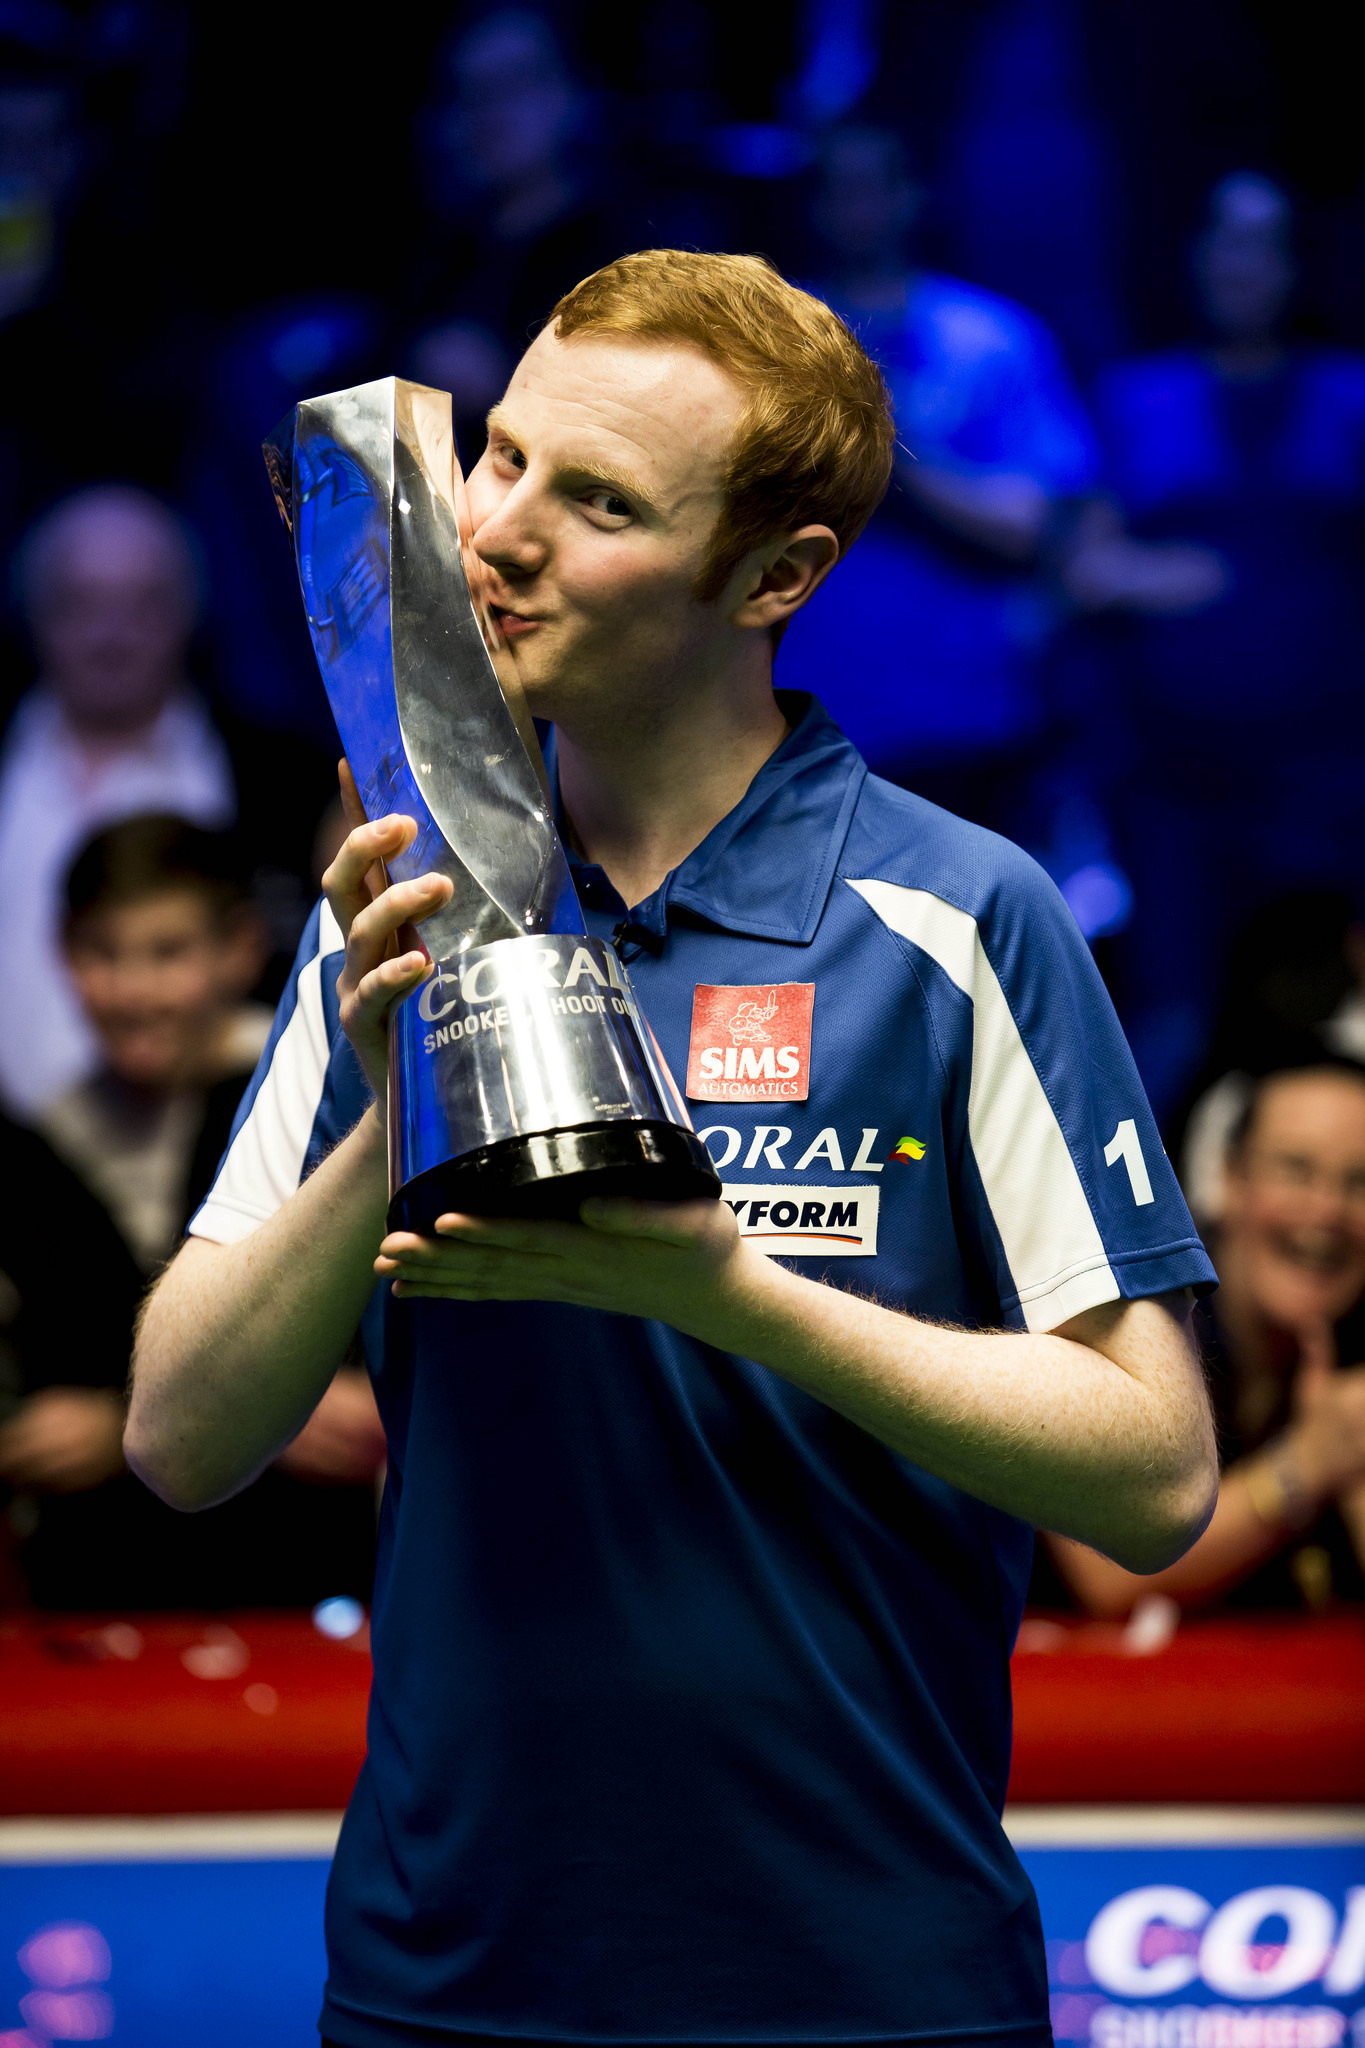 Anthony McGill celebrating his triumph last year.